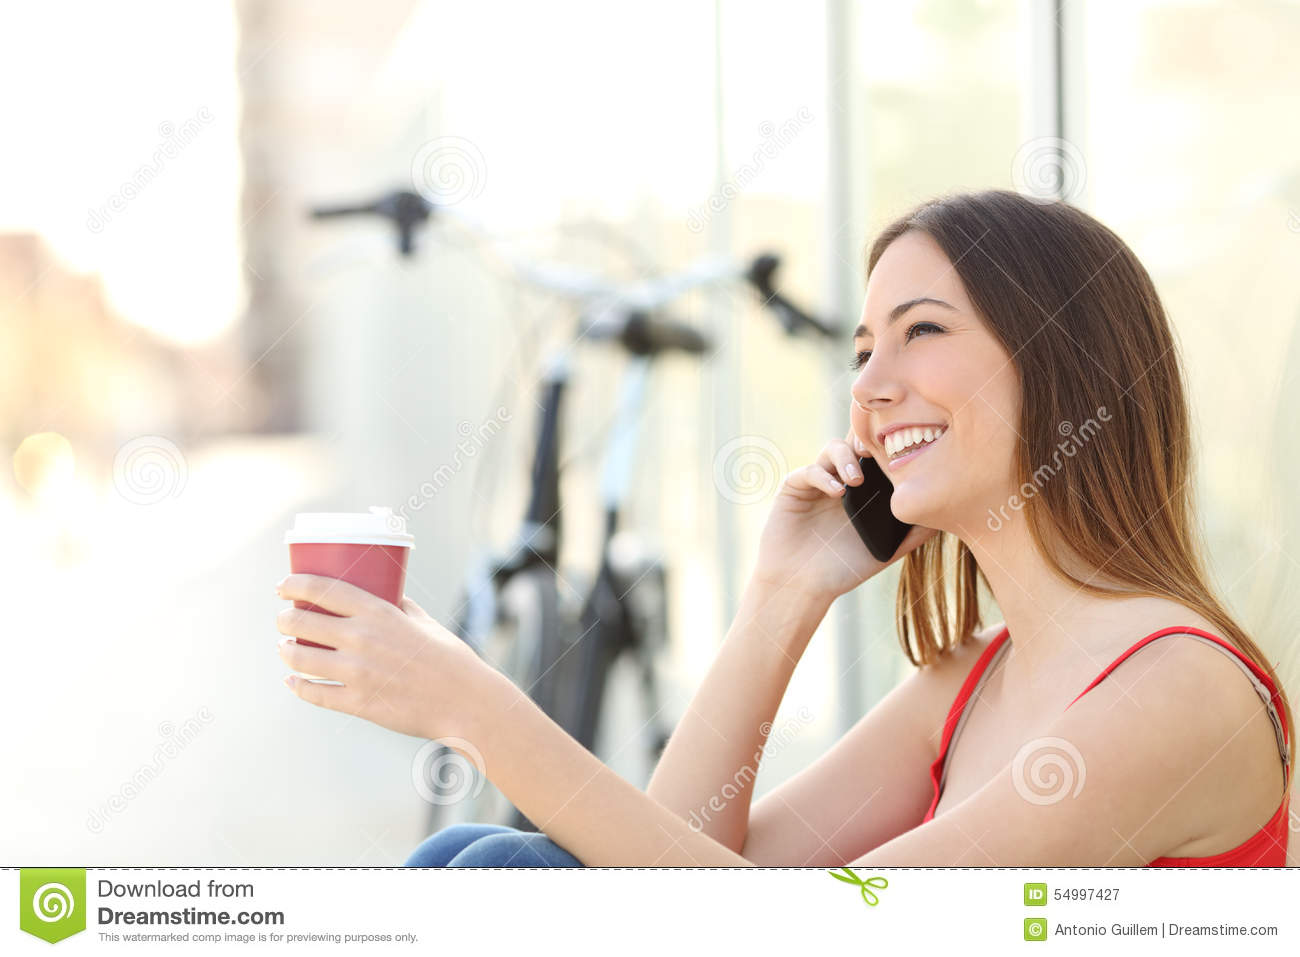 Girl Drinking Coffee Looking At Phone